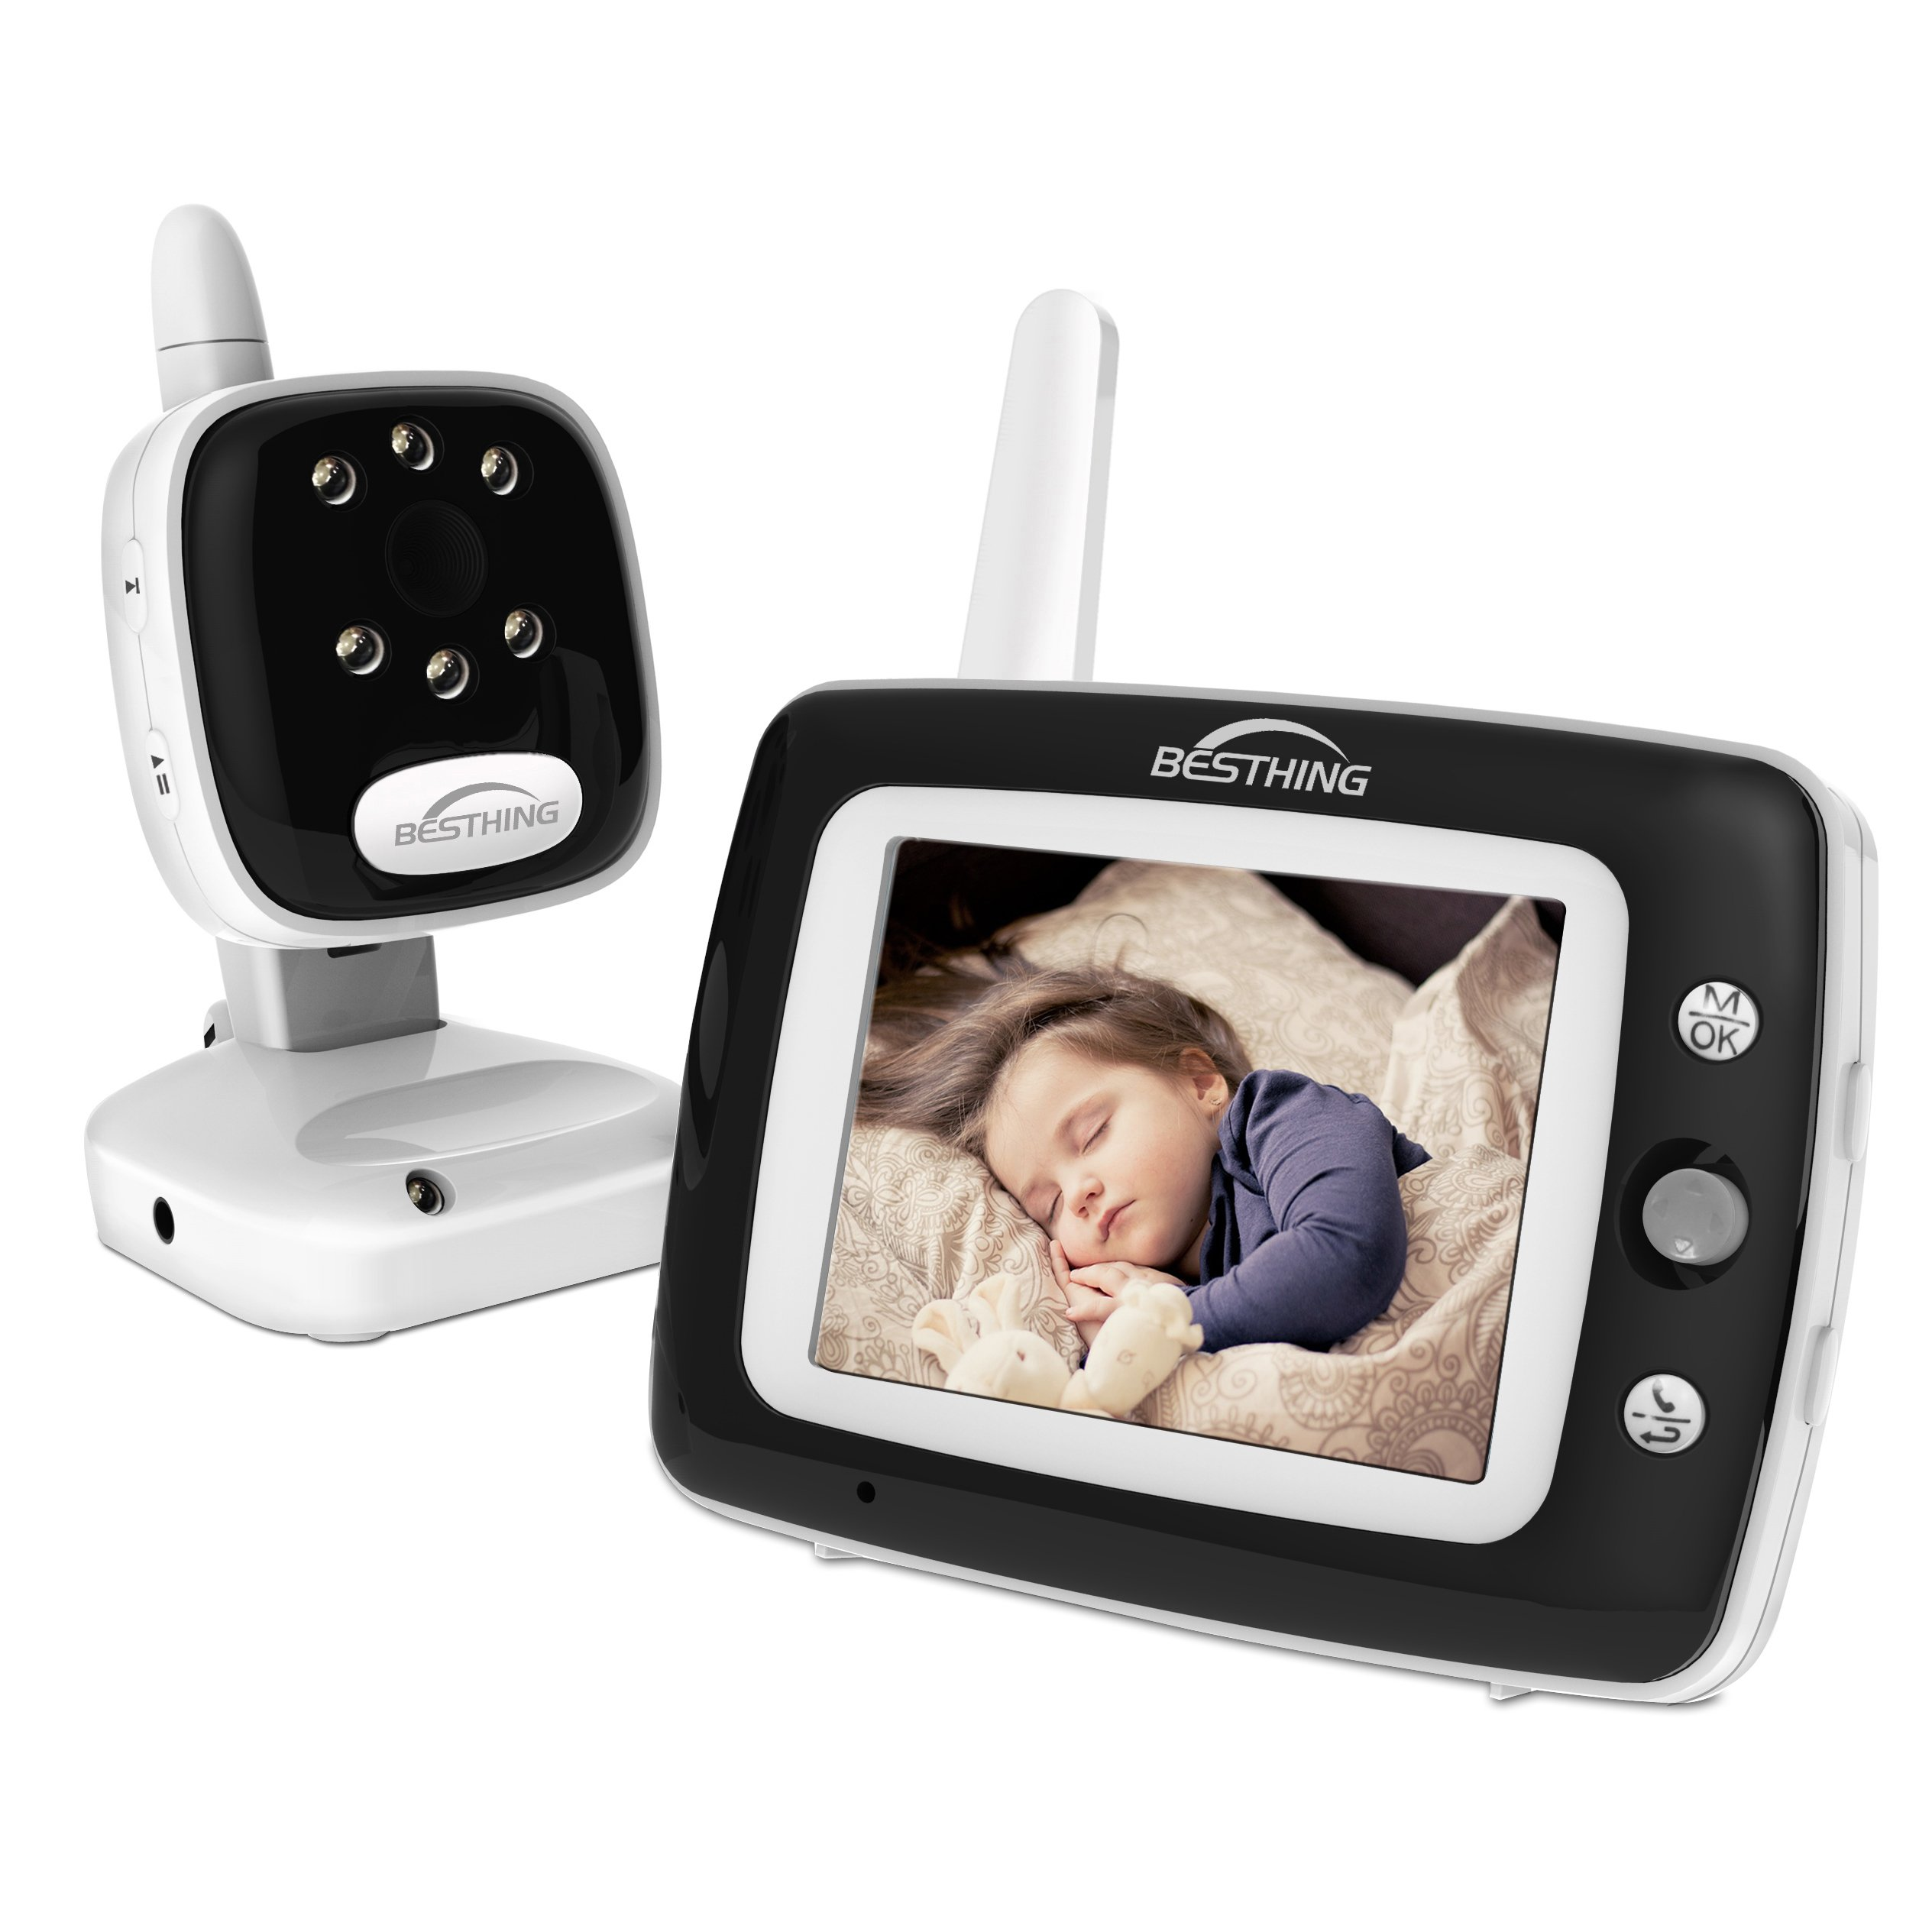 3.5-Inch Digital Video Baby Monitor with Infrared Night Vision, Soothing Lullabies, Two Way Audio and Temperature Monitoring, Long Range (Black)